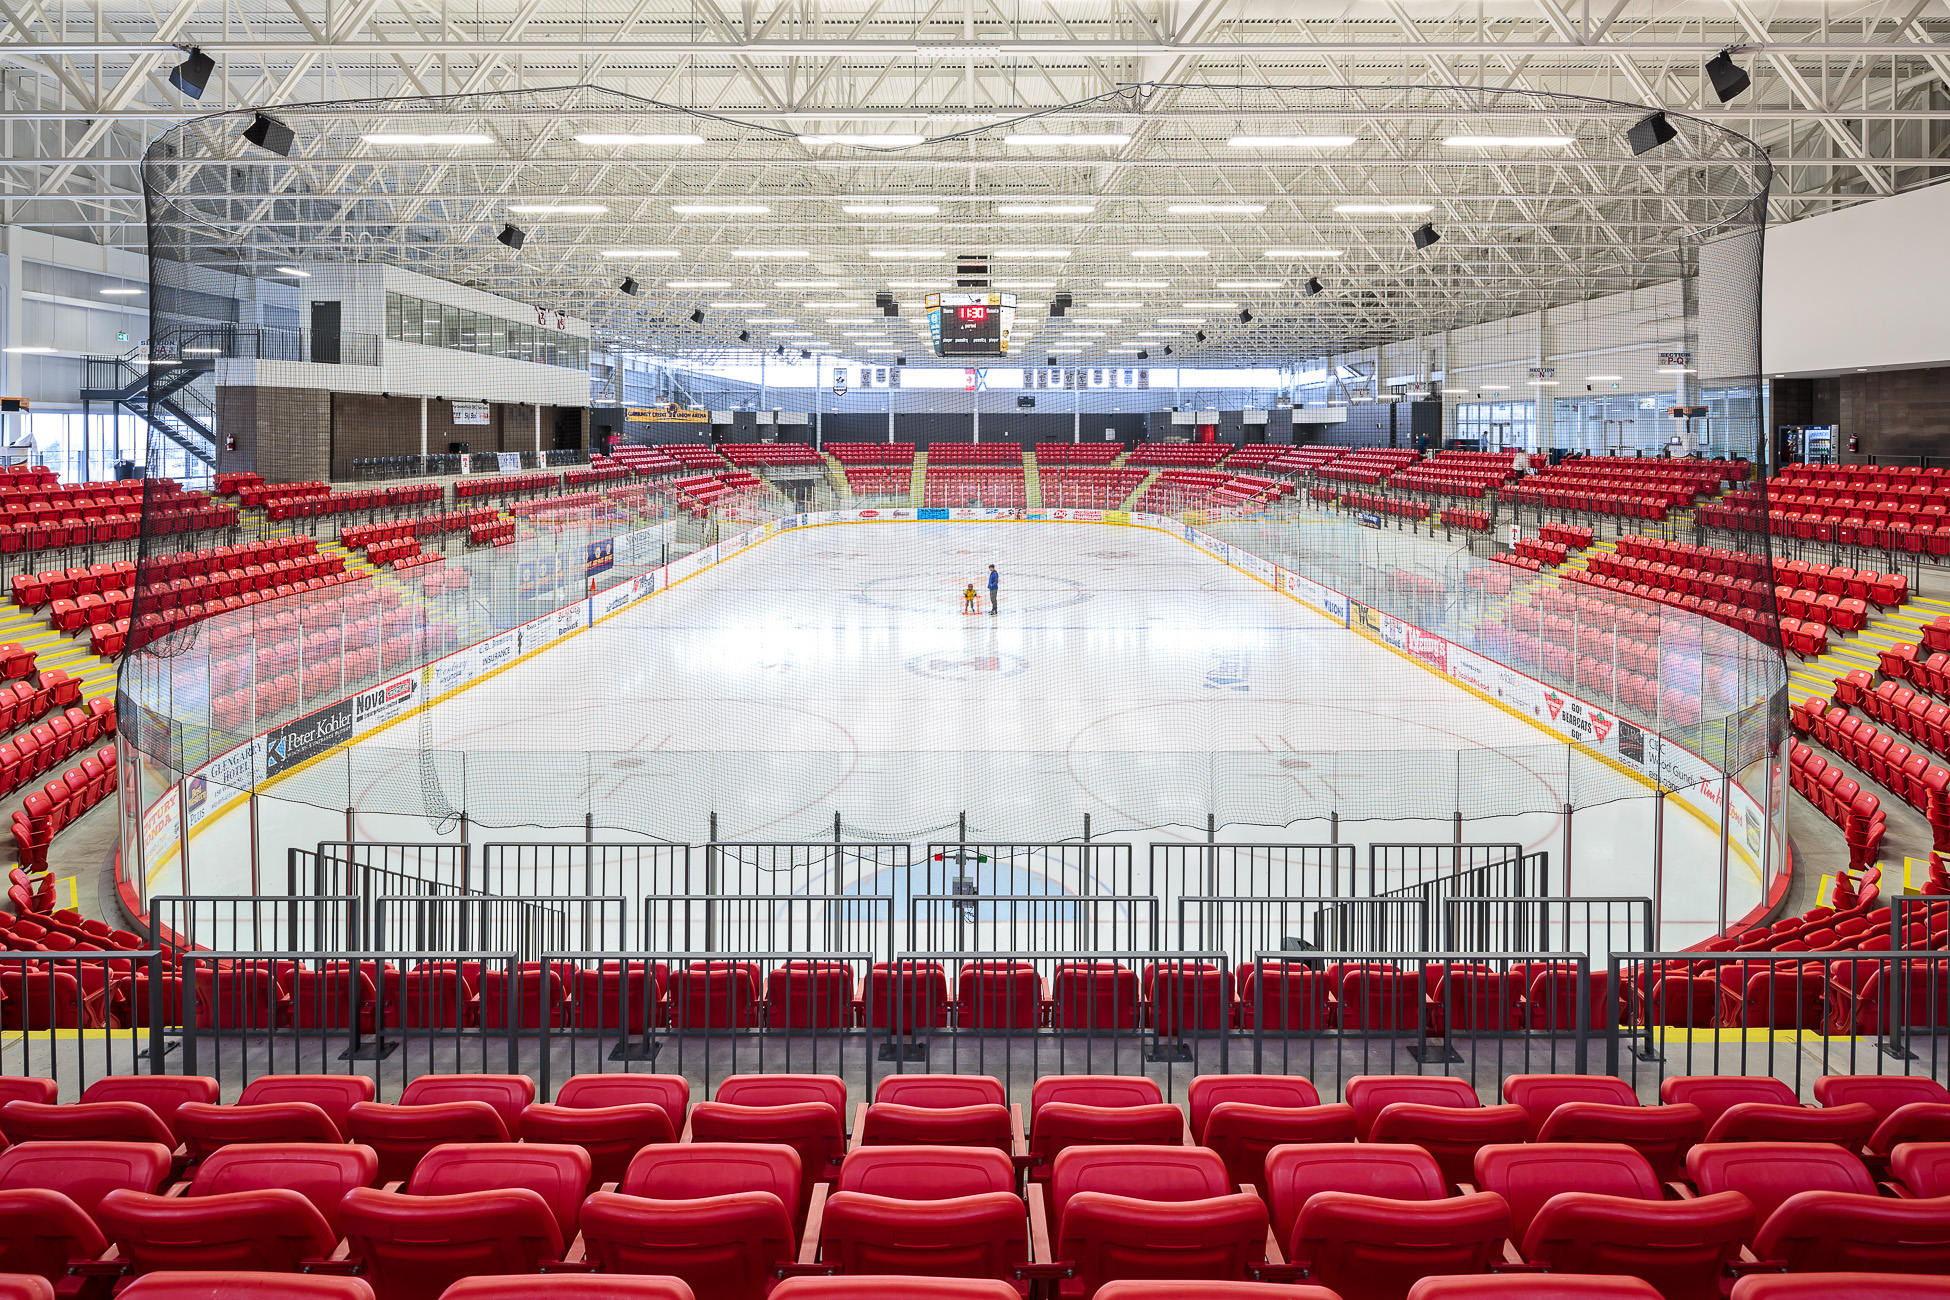 doublespace architecture photography Rath Eastlink Truro Perkins Will arena and hockey rink